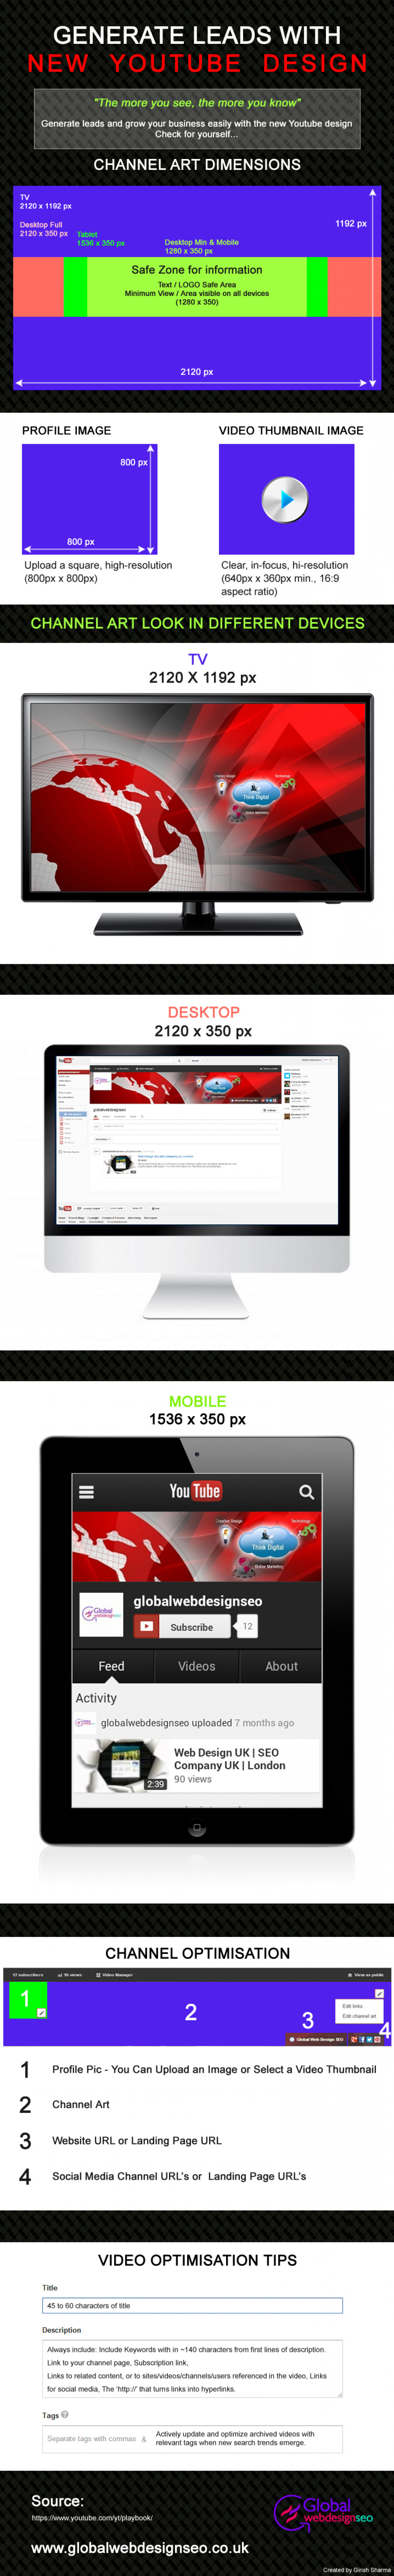 Generate Leads with New YouTube Design Infographic